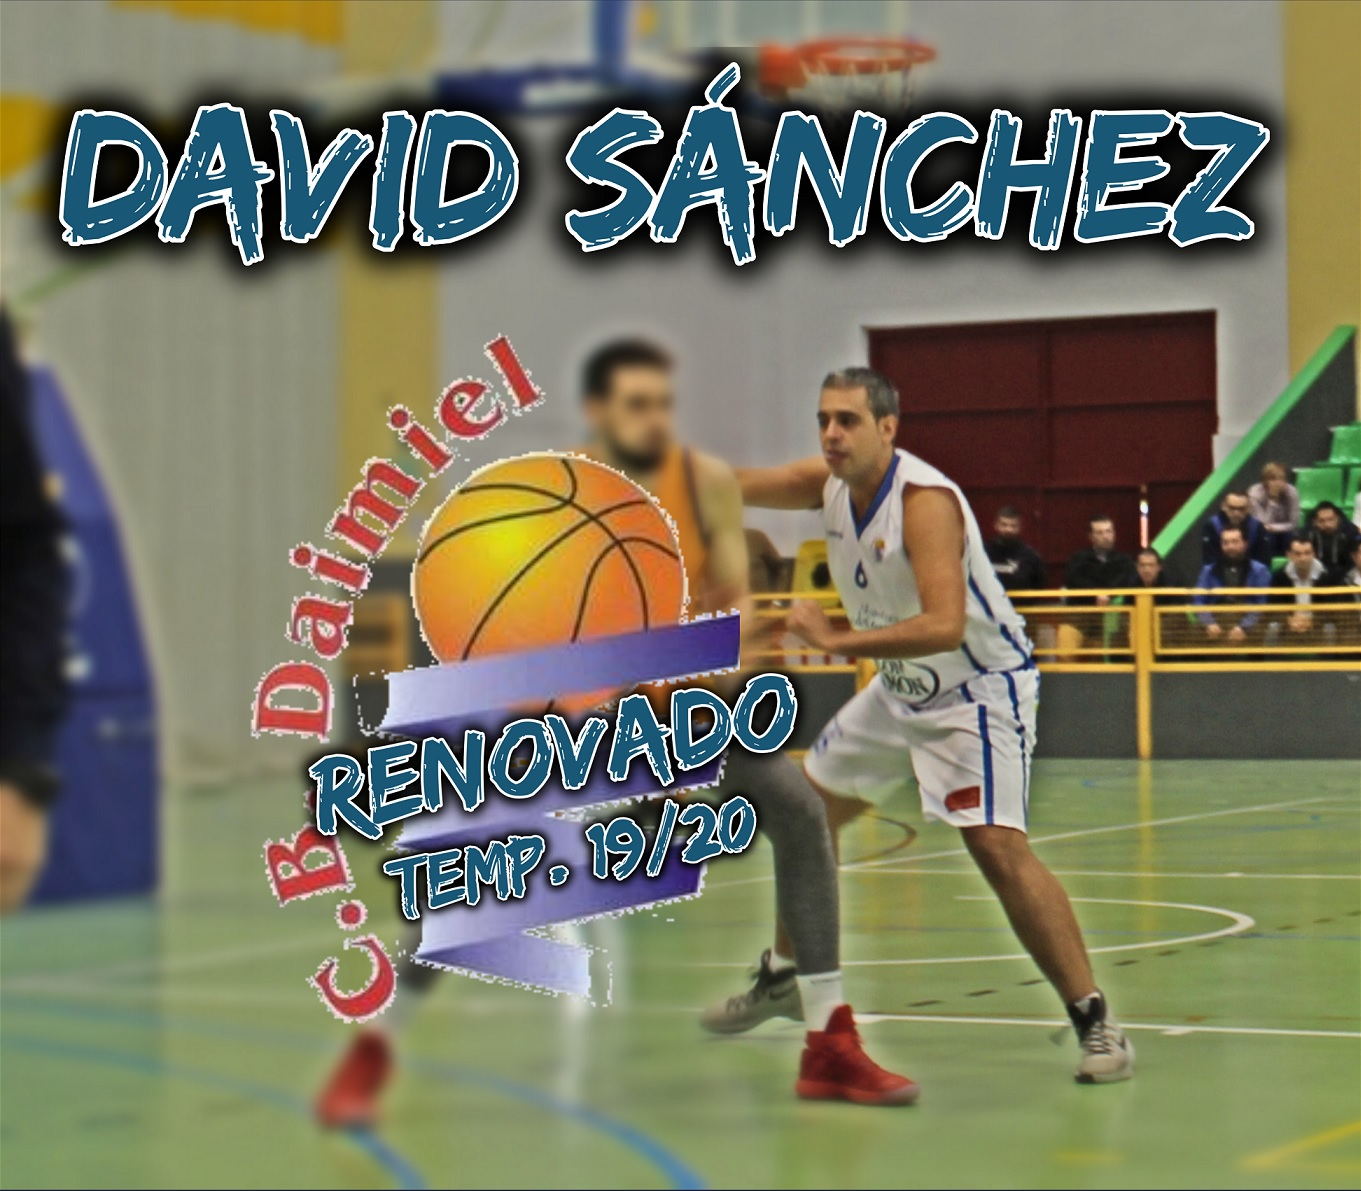 david_sanchez_renov_ok_19_20